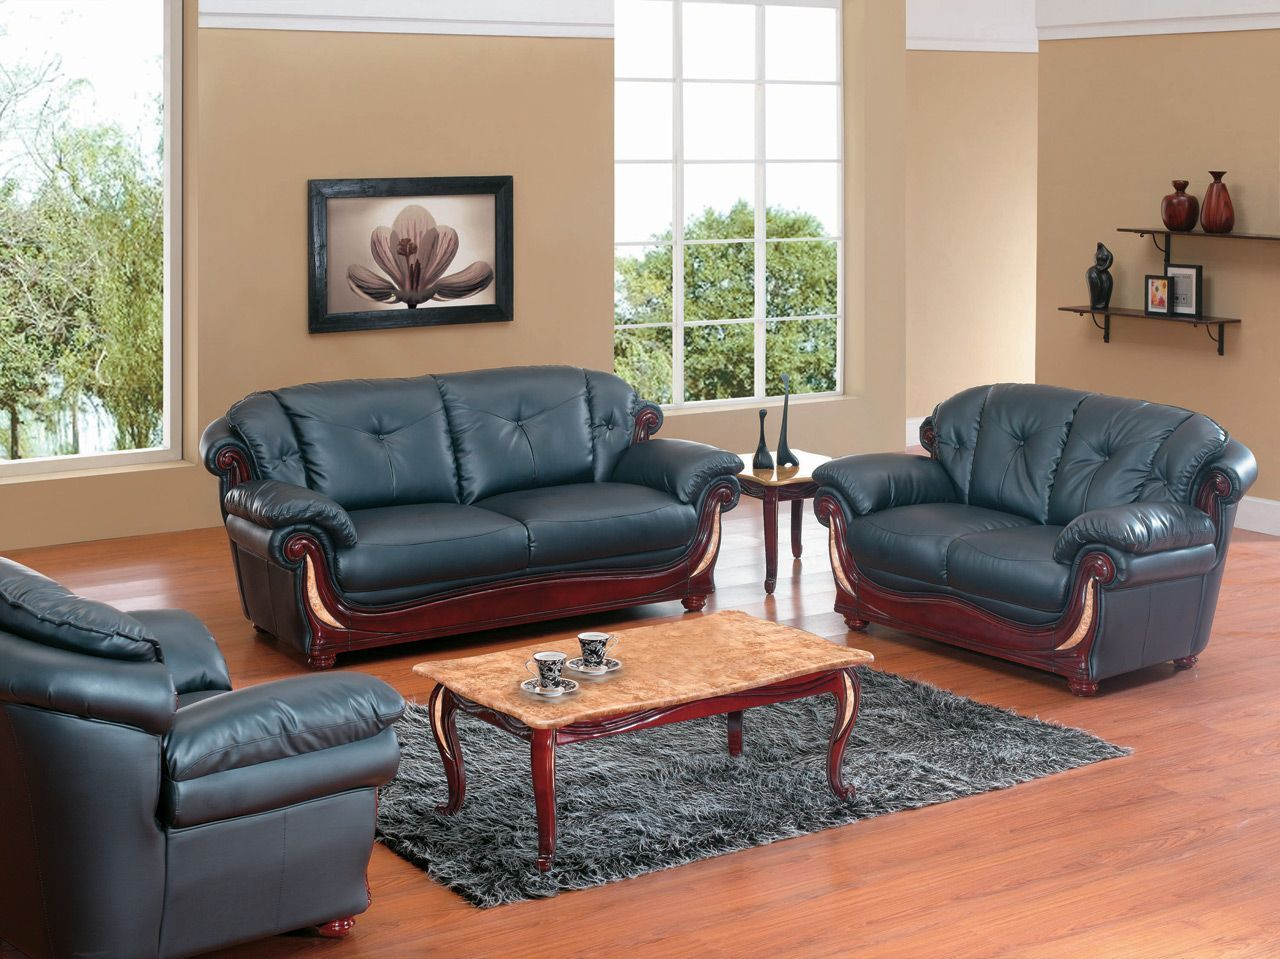 Black Leather With Wood Living Room Set 7991 Black Living Room Sets Living Room Wood Wood Sofa